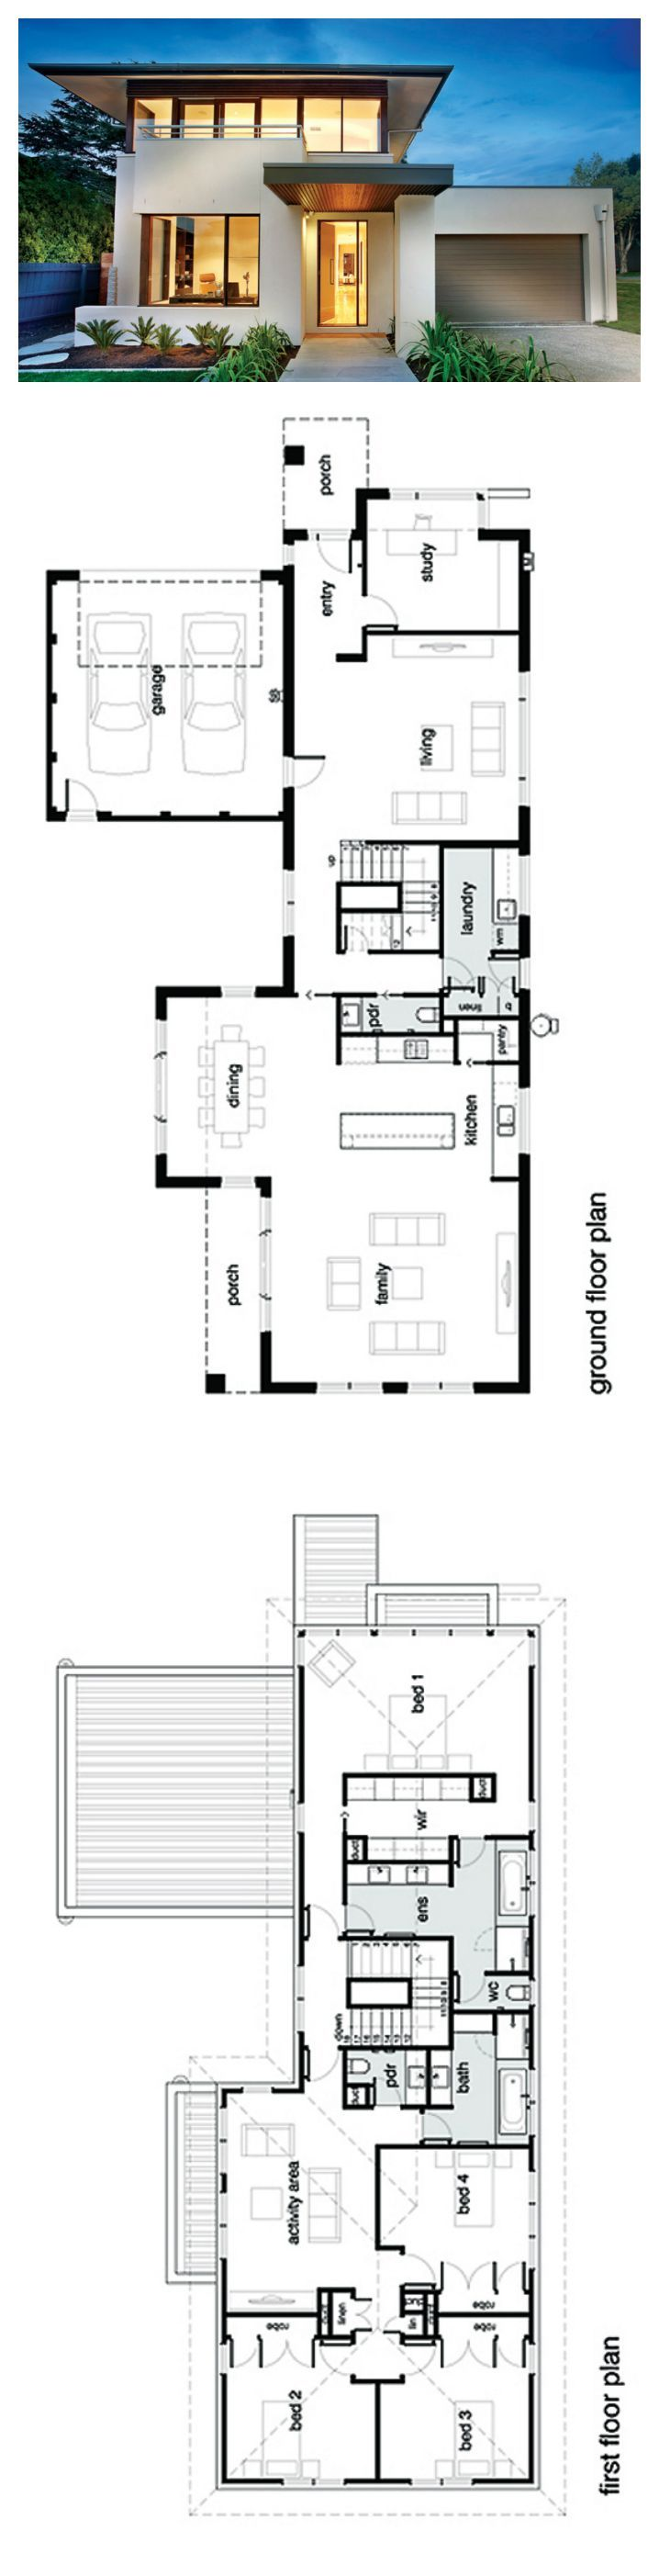 Best 25 modern house plans ideas on pinterest modern Floor plan of a modern house